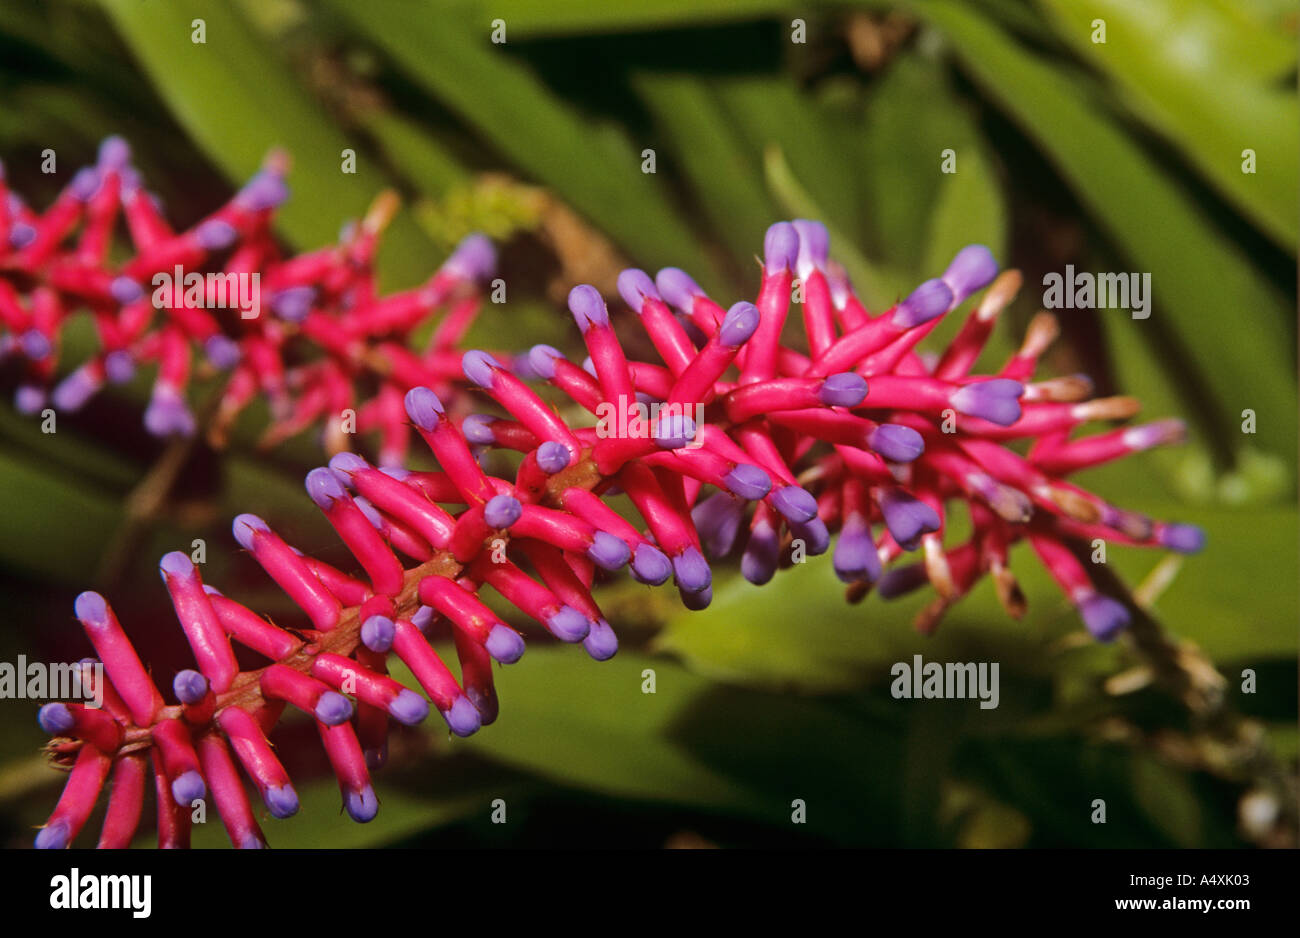 A red Australian exotic flower - Stock Image